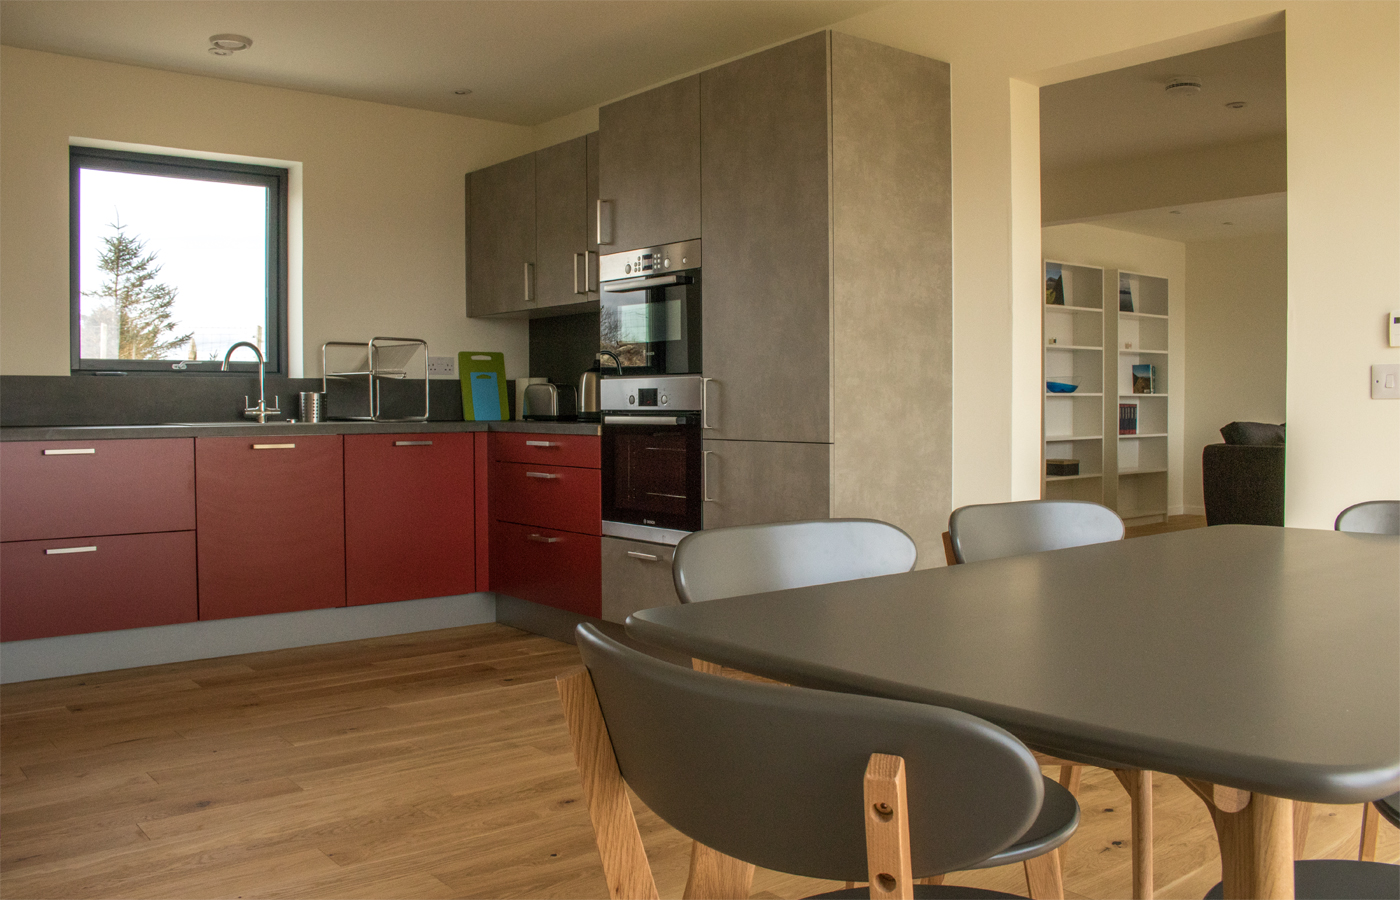 Kitchen at Taigh Uilleim self catering holiday home, Isle of Skye